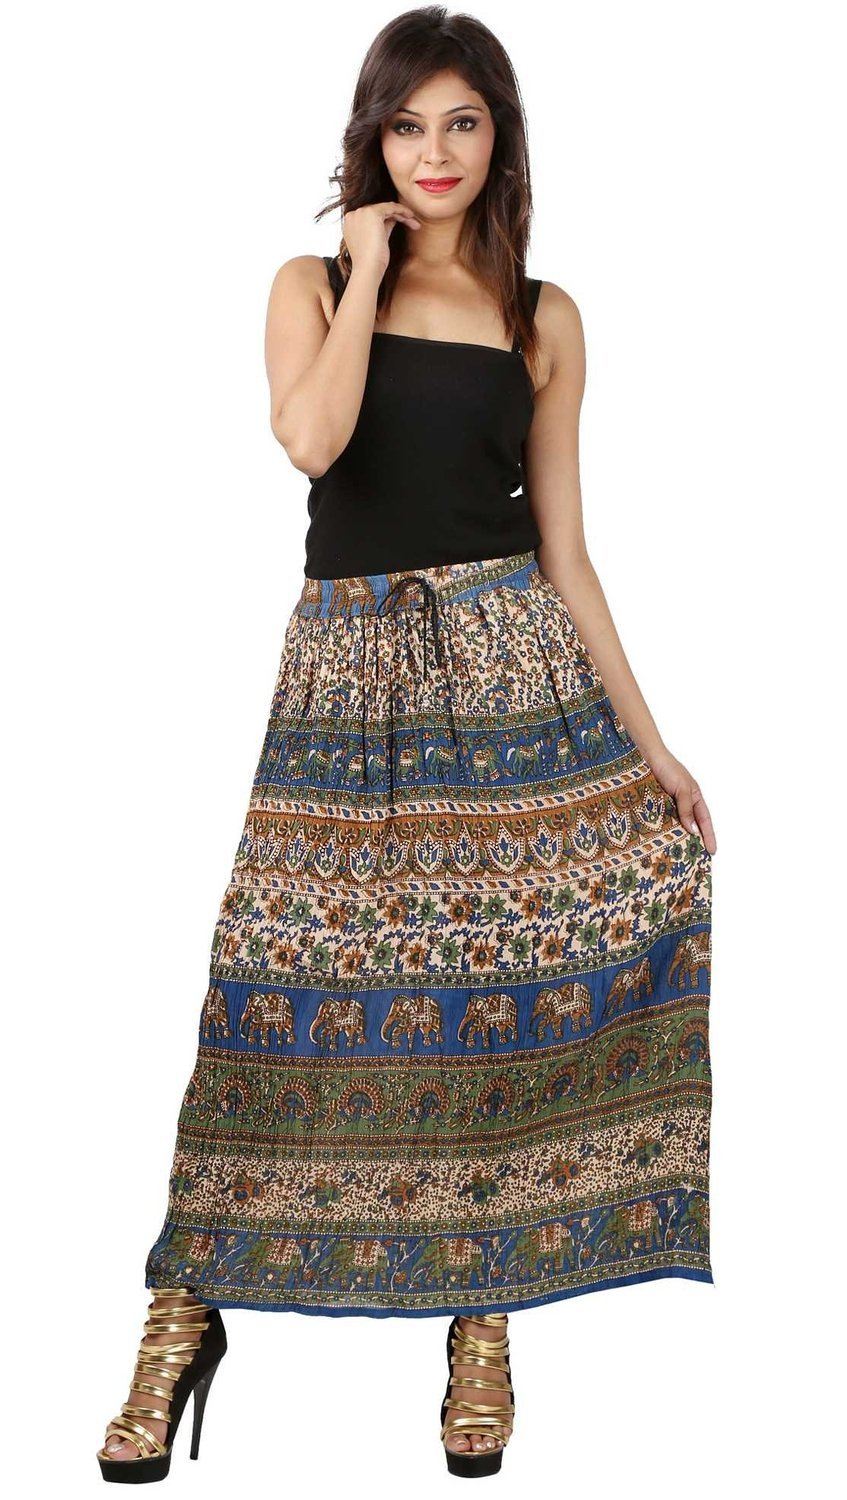 Shree Ram Impex Women's Gypsy Boho Hippie Skirt Ankle Length 36 Inches (Multicolored)